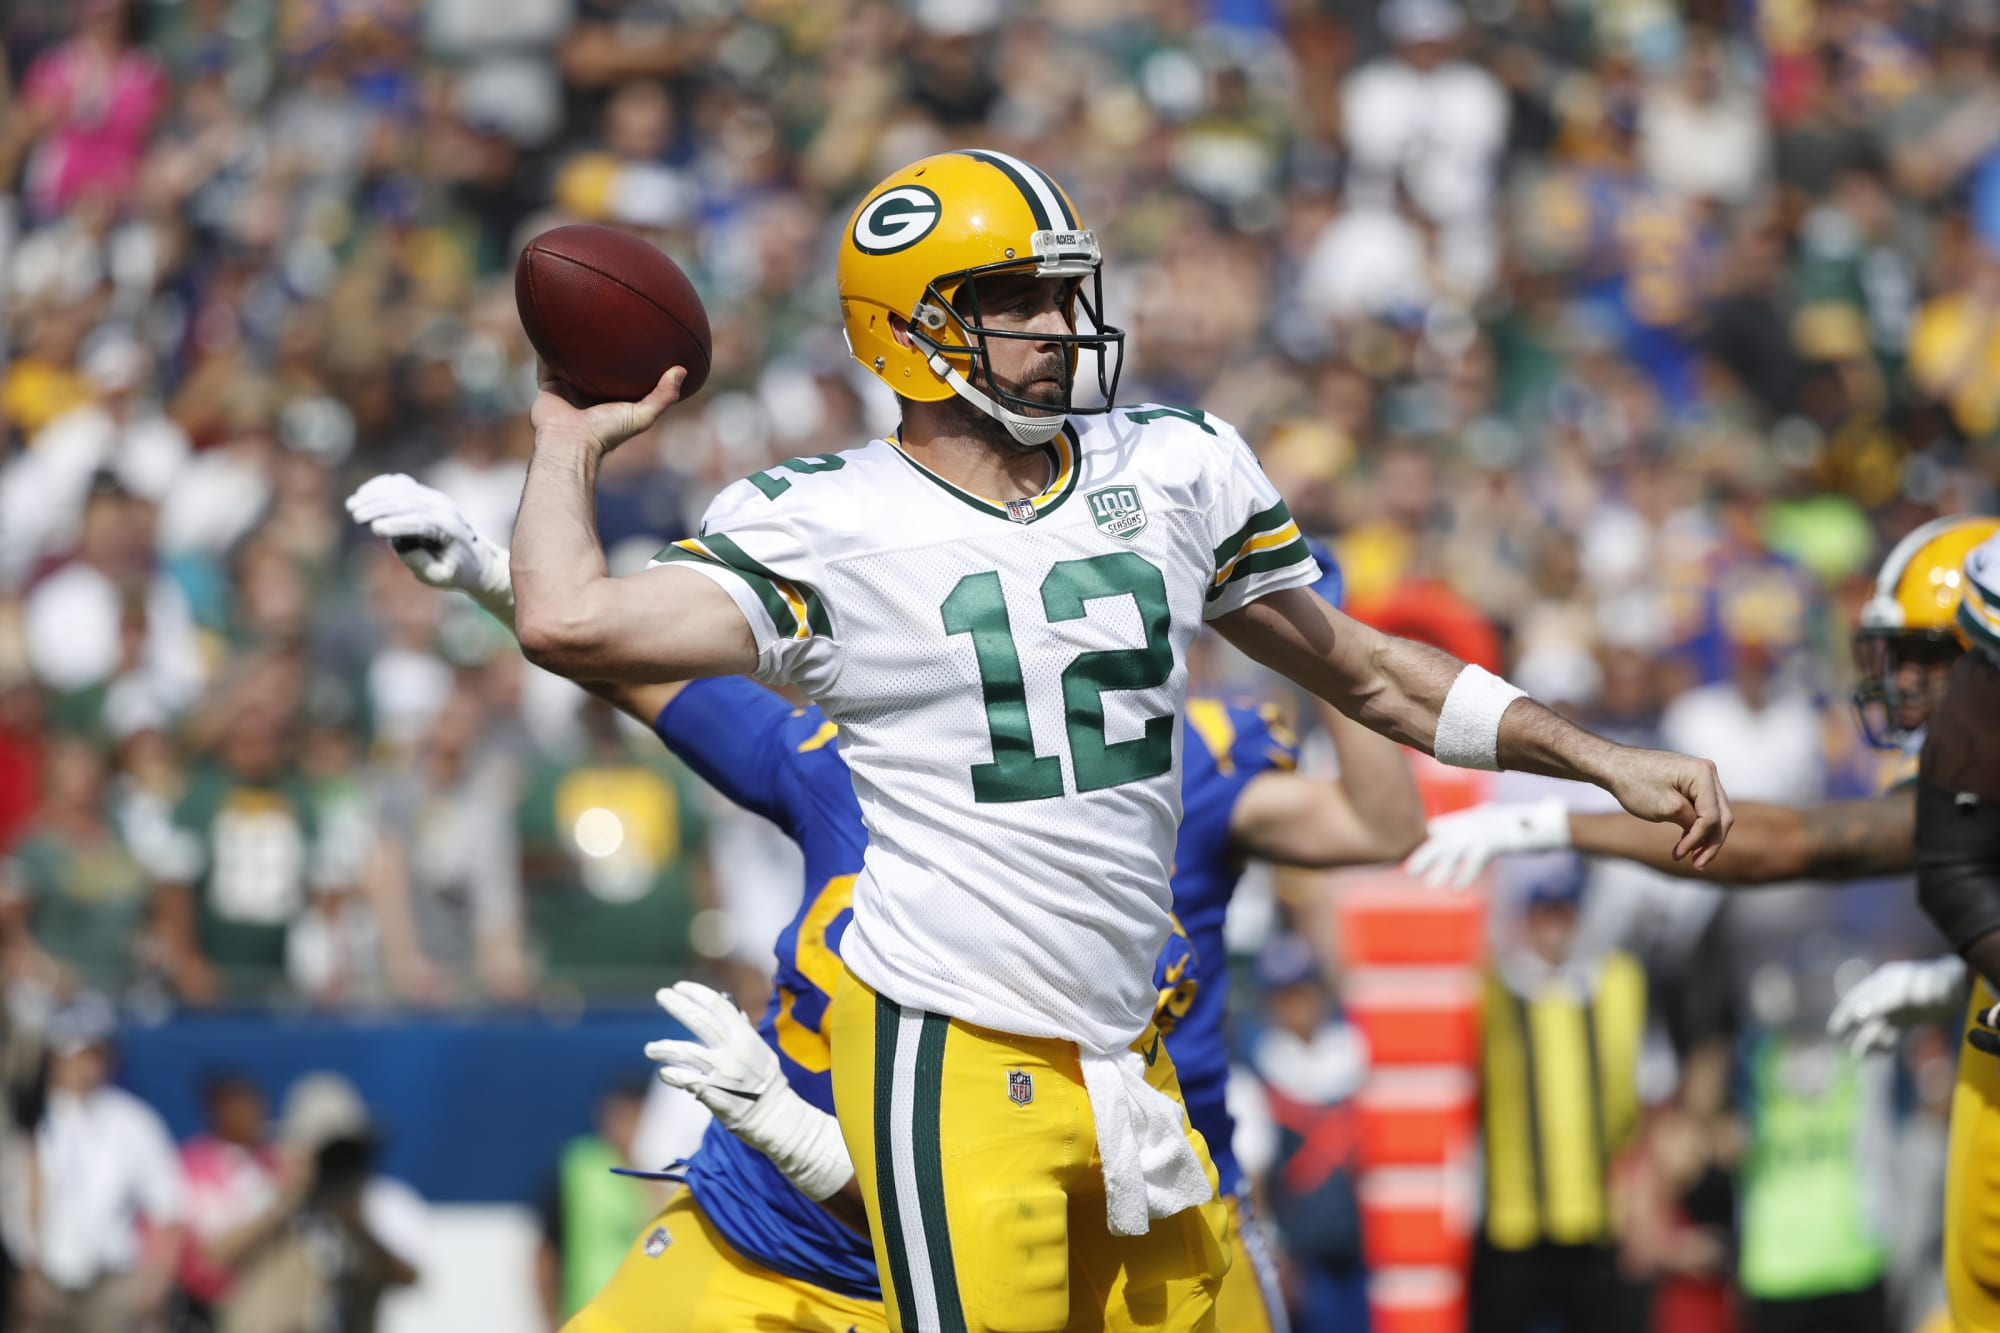 Green Bay Packers: Quick Reactions to Upcoming Divisional Matchup with Rams